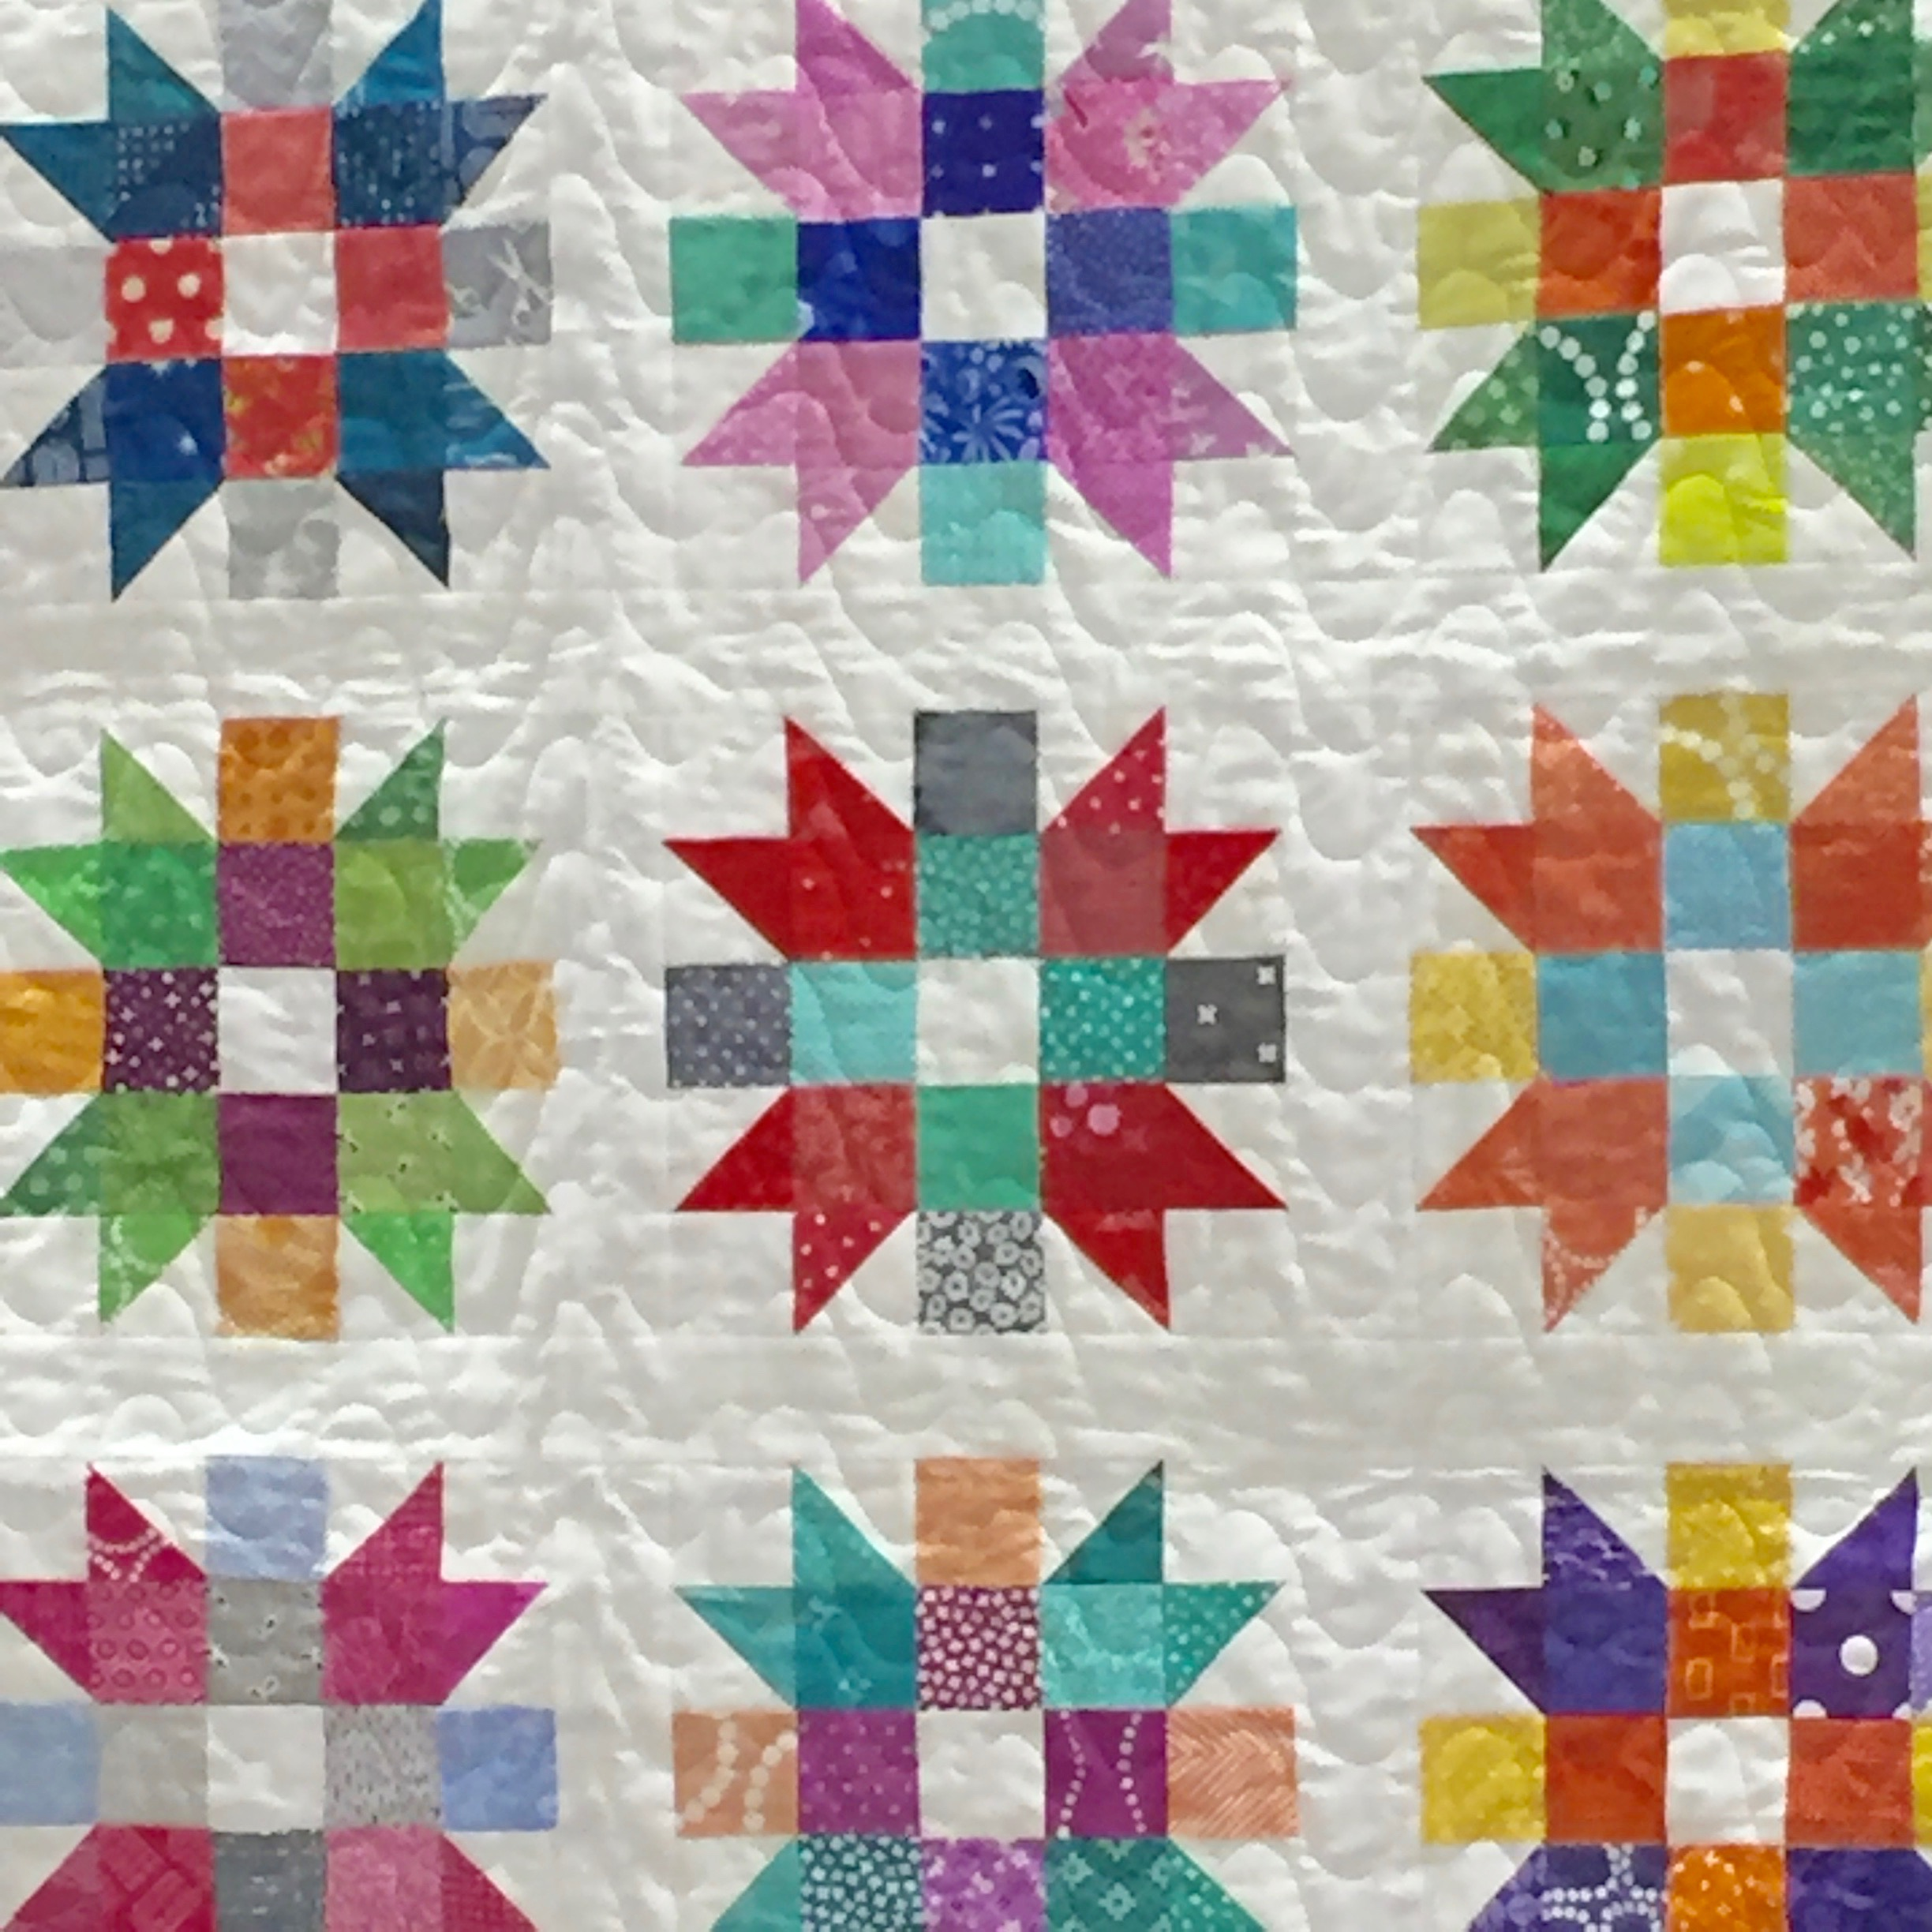 PMQG Charity Quilt shown at February meeting